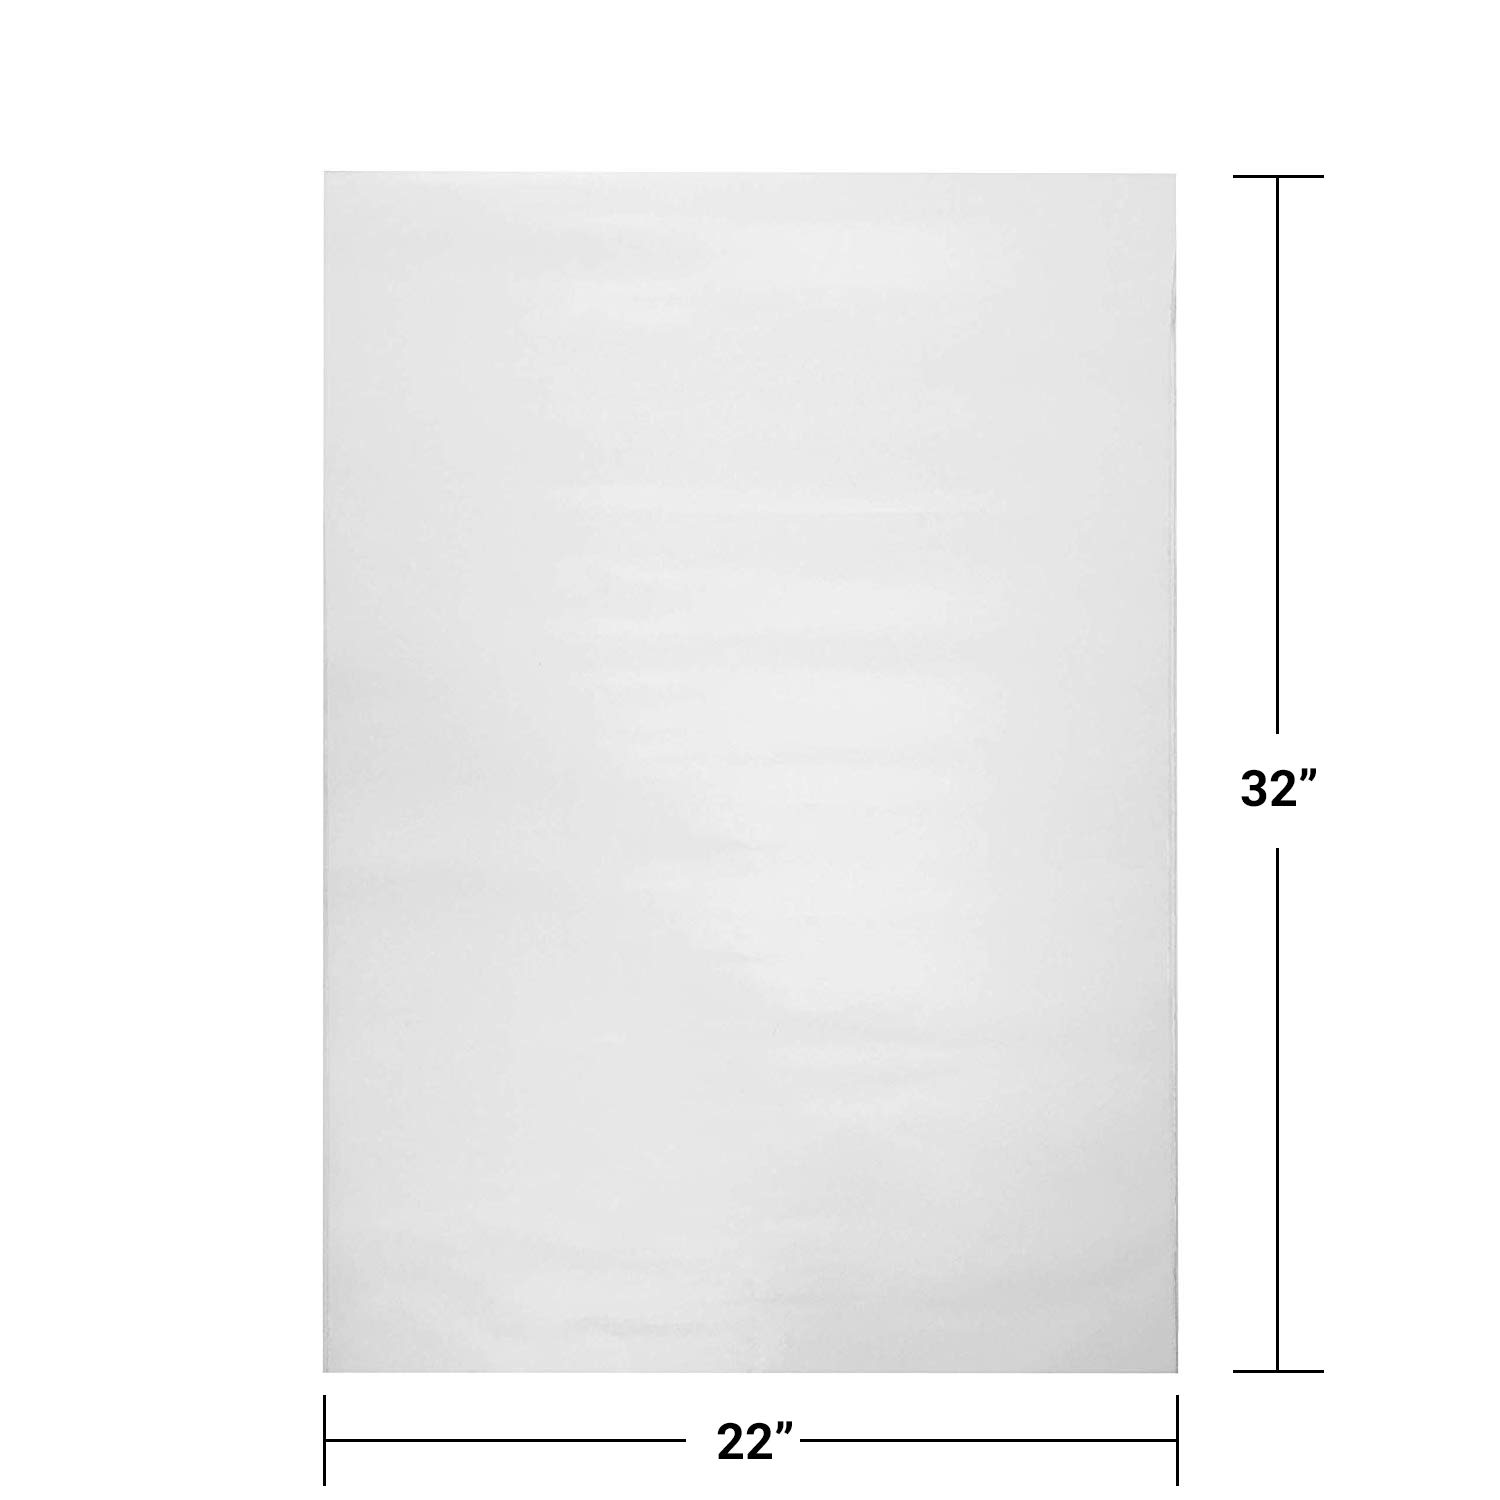 TYH Supplies 1000 Large Sheets Newsprint Packing Paper Unprinted Blank 32 x 22 Inch by TYH Supplies